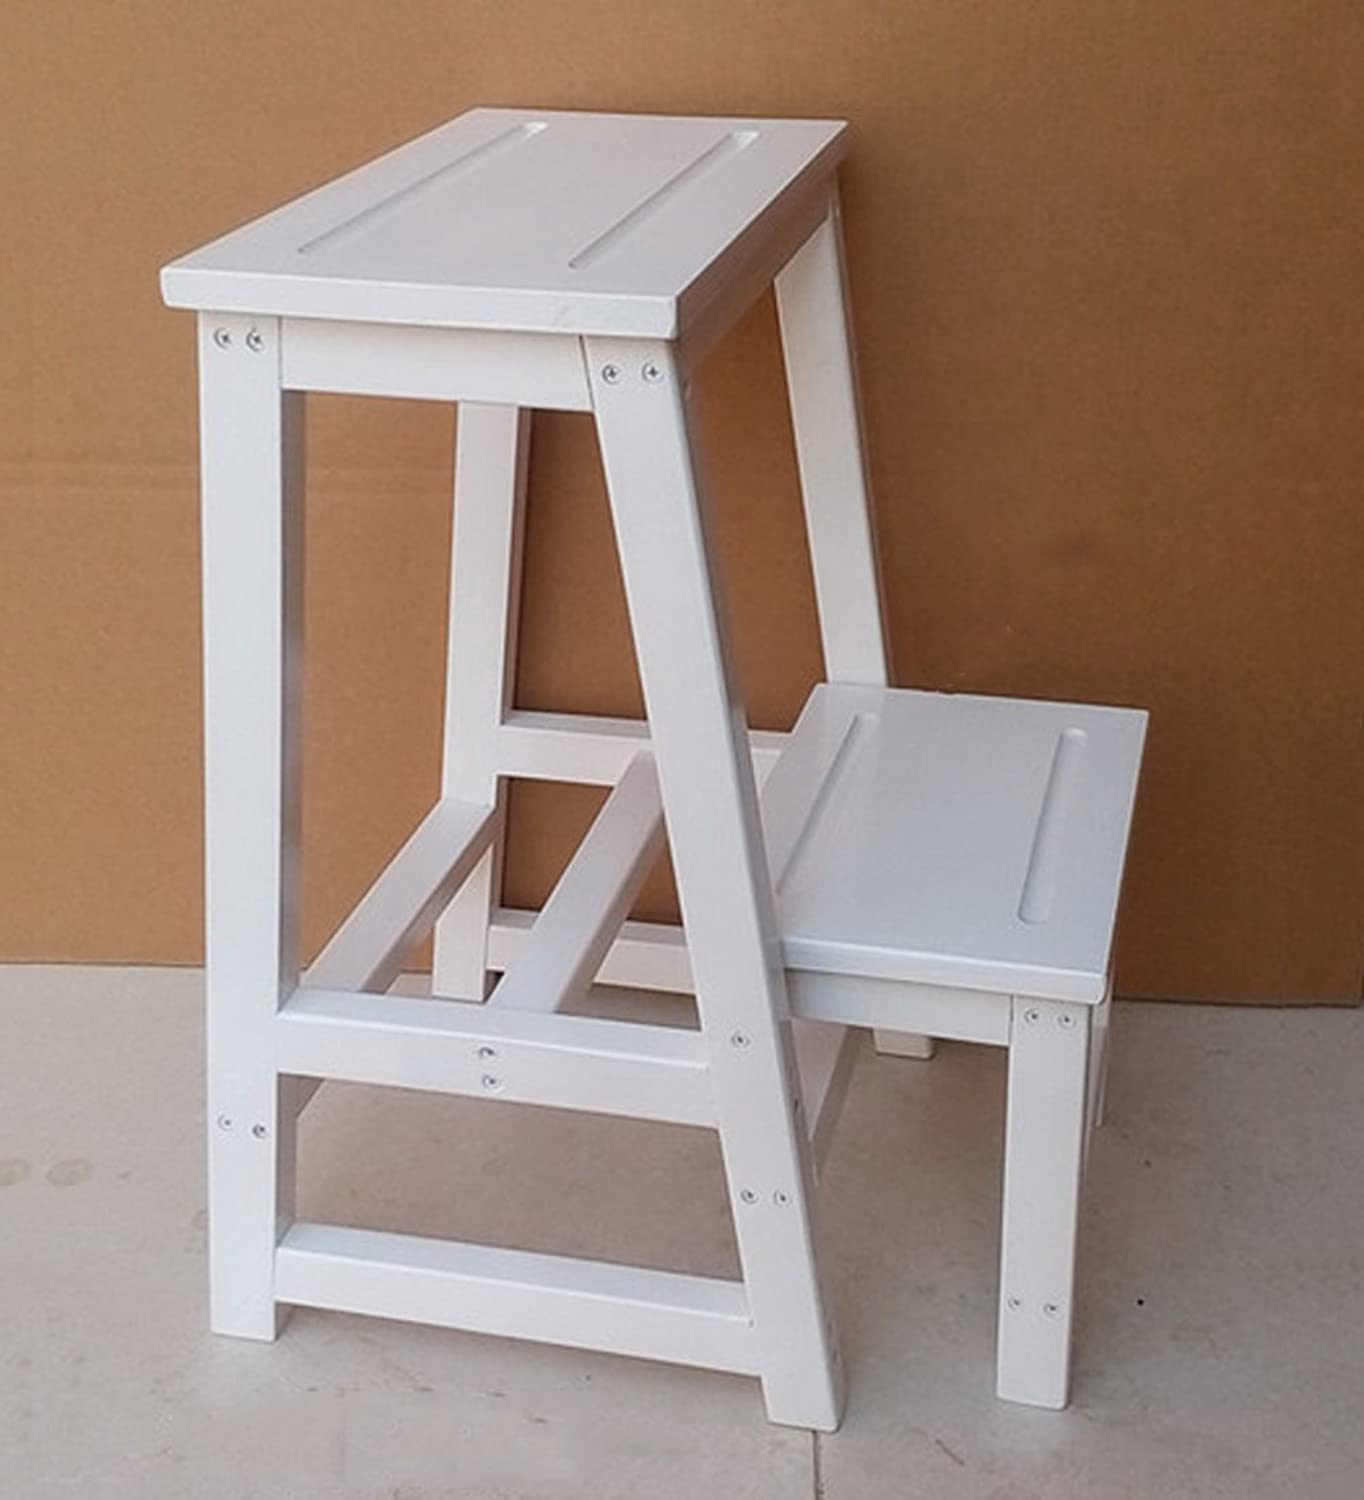 CAIJUN Folding Ladder Stool Solid Wood End Product Dual-use Climb High Changing His shoes Stool, 3 colors (color   White)